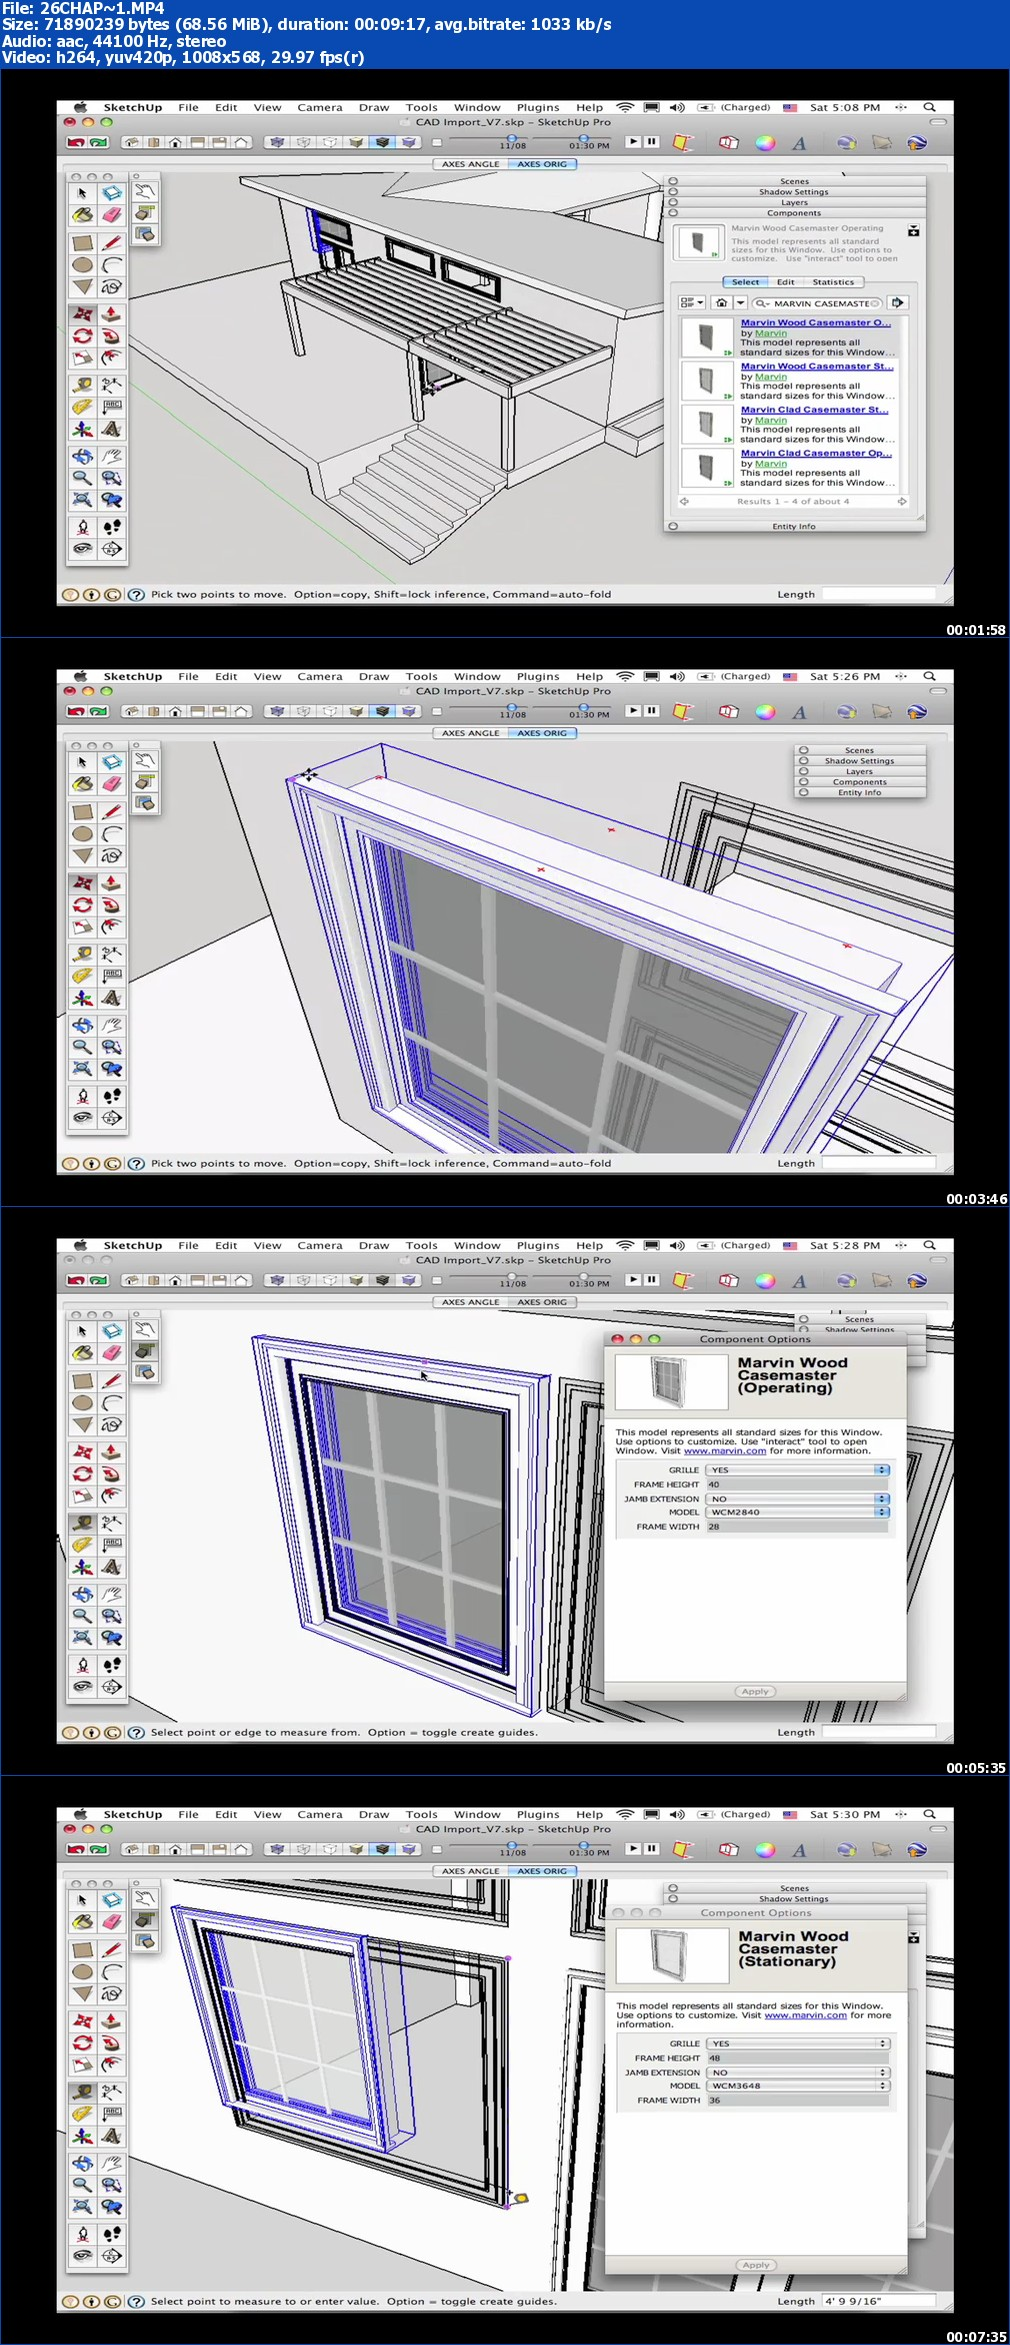 Peachpit Press - Google SketchUp Pro Series: SketchUp + CAD